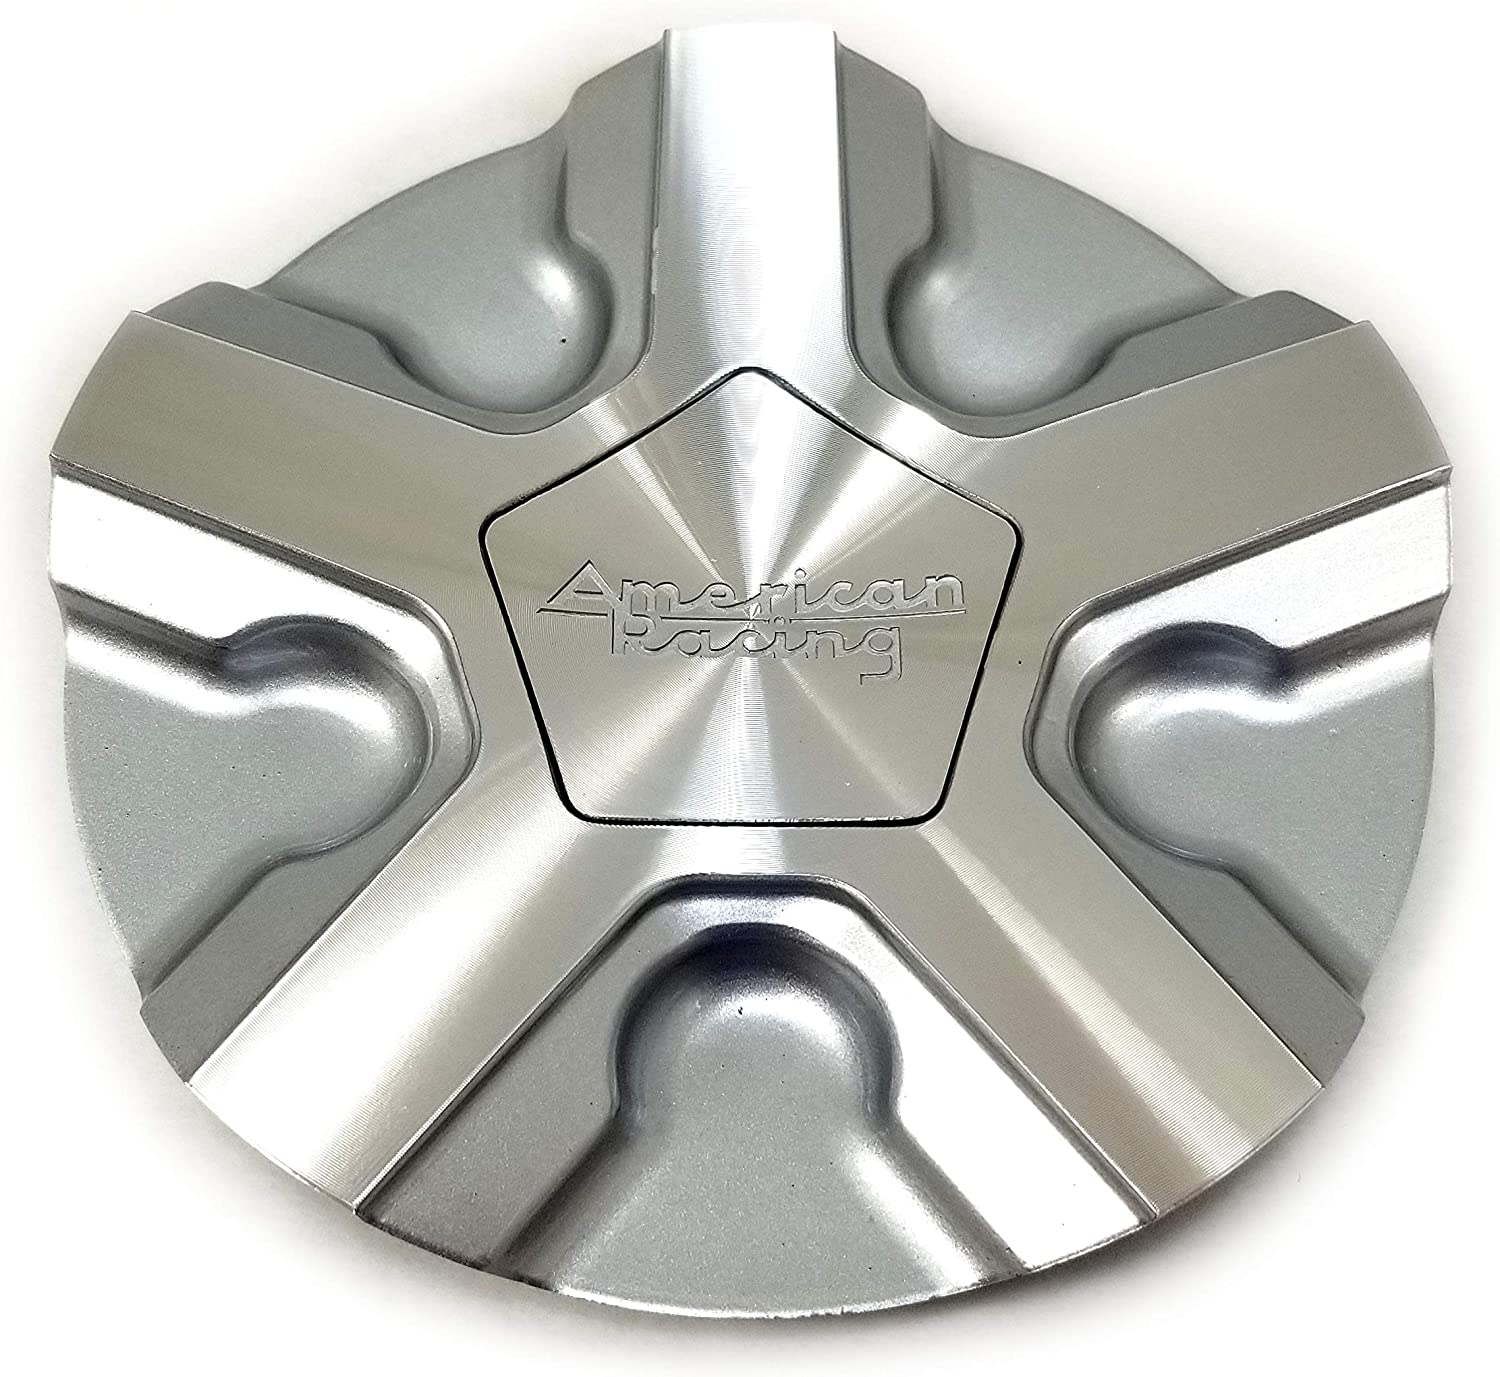 American Racing Machined Silver Wheel Center Hub Cap 6 Od Snap In For 5X4 25 5X108 5X4 5 5X114 3 4X4 5 4X114 3 4X100 5X120 5X110 5X115 5X100 5X105 6X5 6X127 Ar921 Trigger